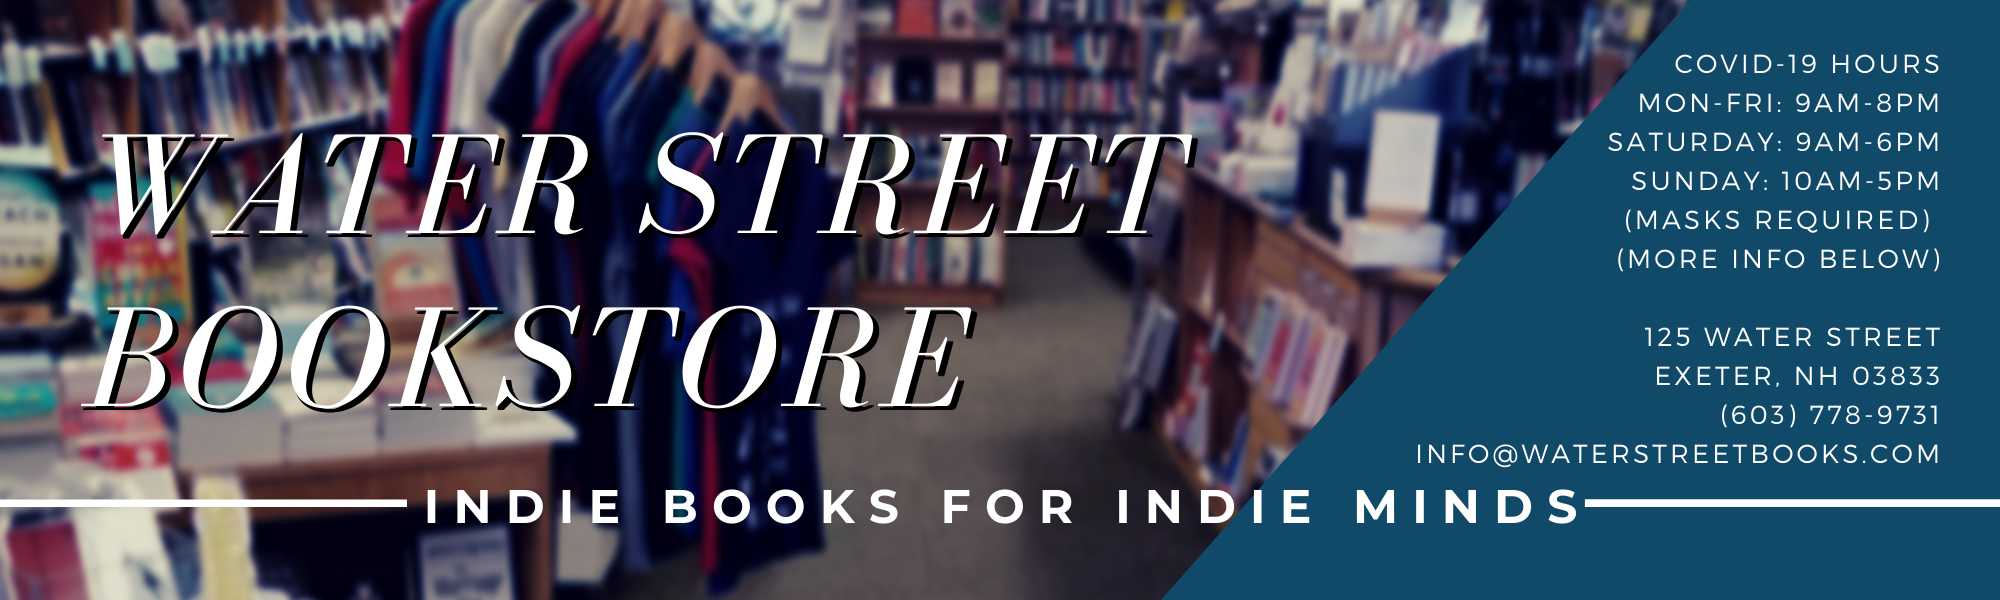 Water Street Bookstore, Inc.